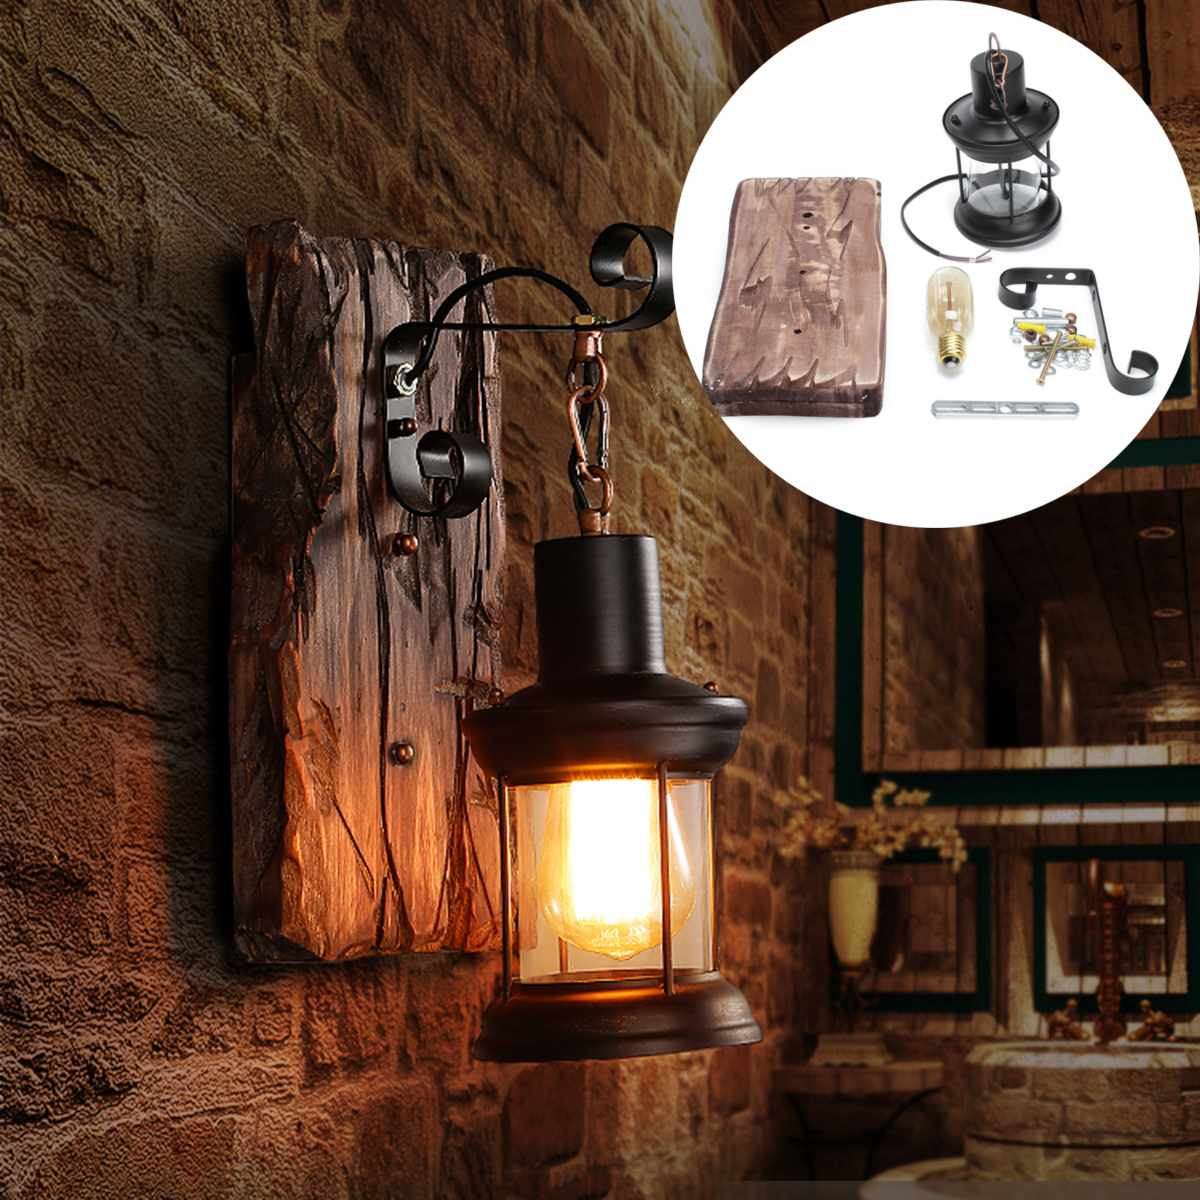 Vintage Industrial Retro Wood Metal Sconce Cafe Bar Wall Lamp Fixture Light Home Decor (bulbs is not included)